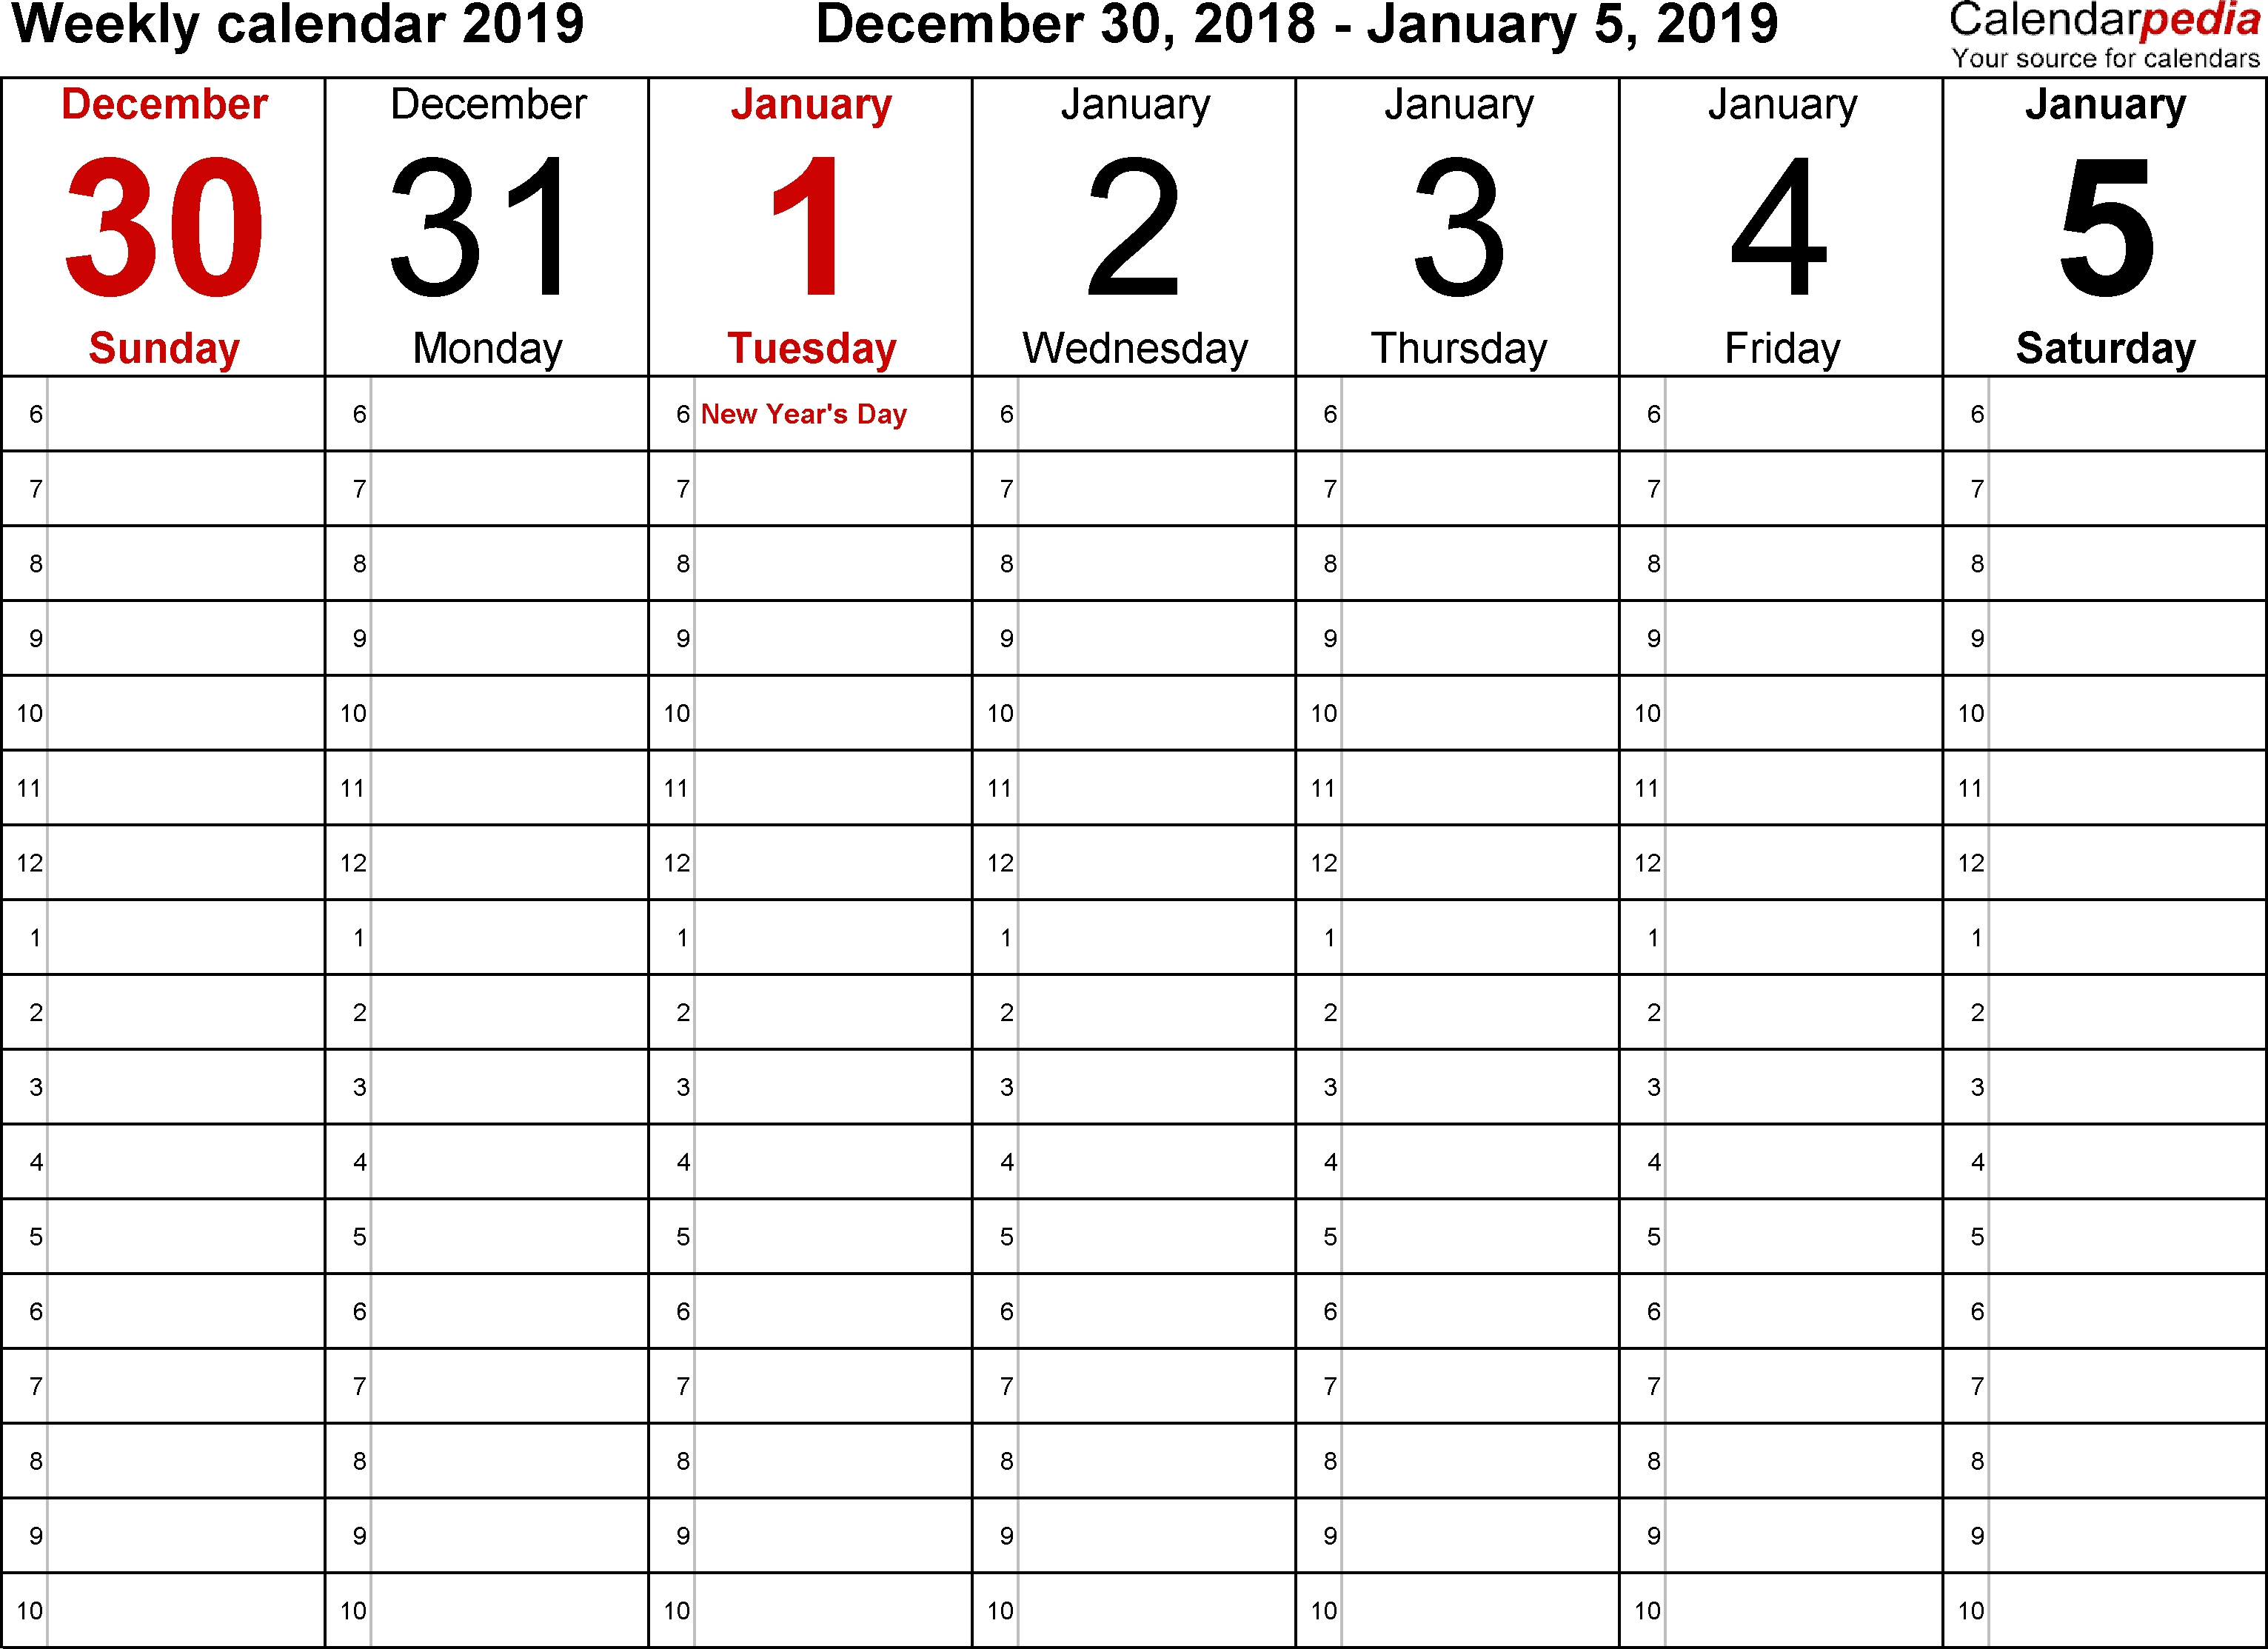 Weekly Calendar 2019 For Word – 12 Free Printable Templates Calendar intended for Blank December Weekly Calander